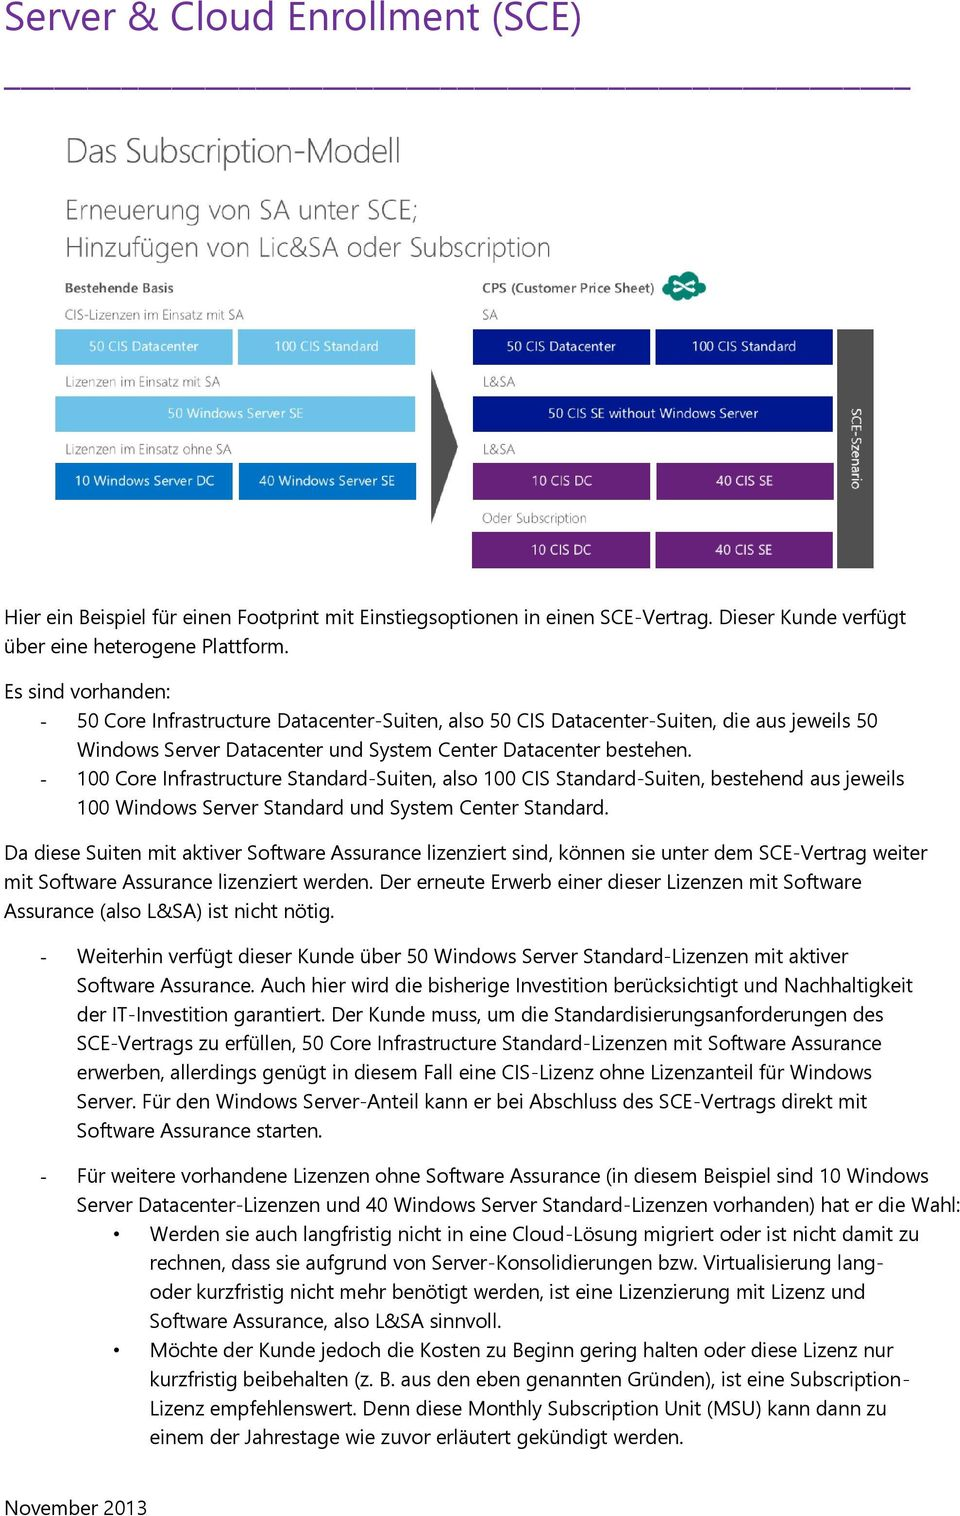 - 100 Core Infrastructure Standard-Suiten, also 100 CIS Standard-Suiten, bestehend aus jeweils 100 Windows Server Standard und System Center Standard.